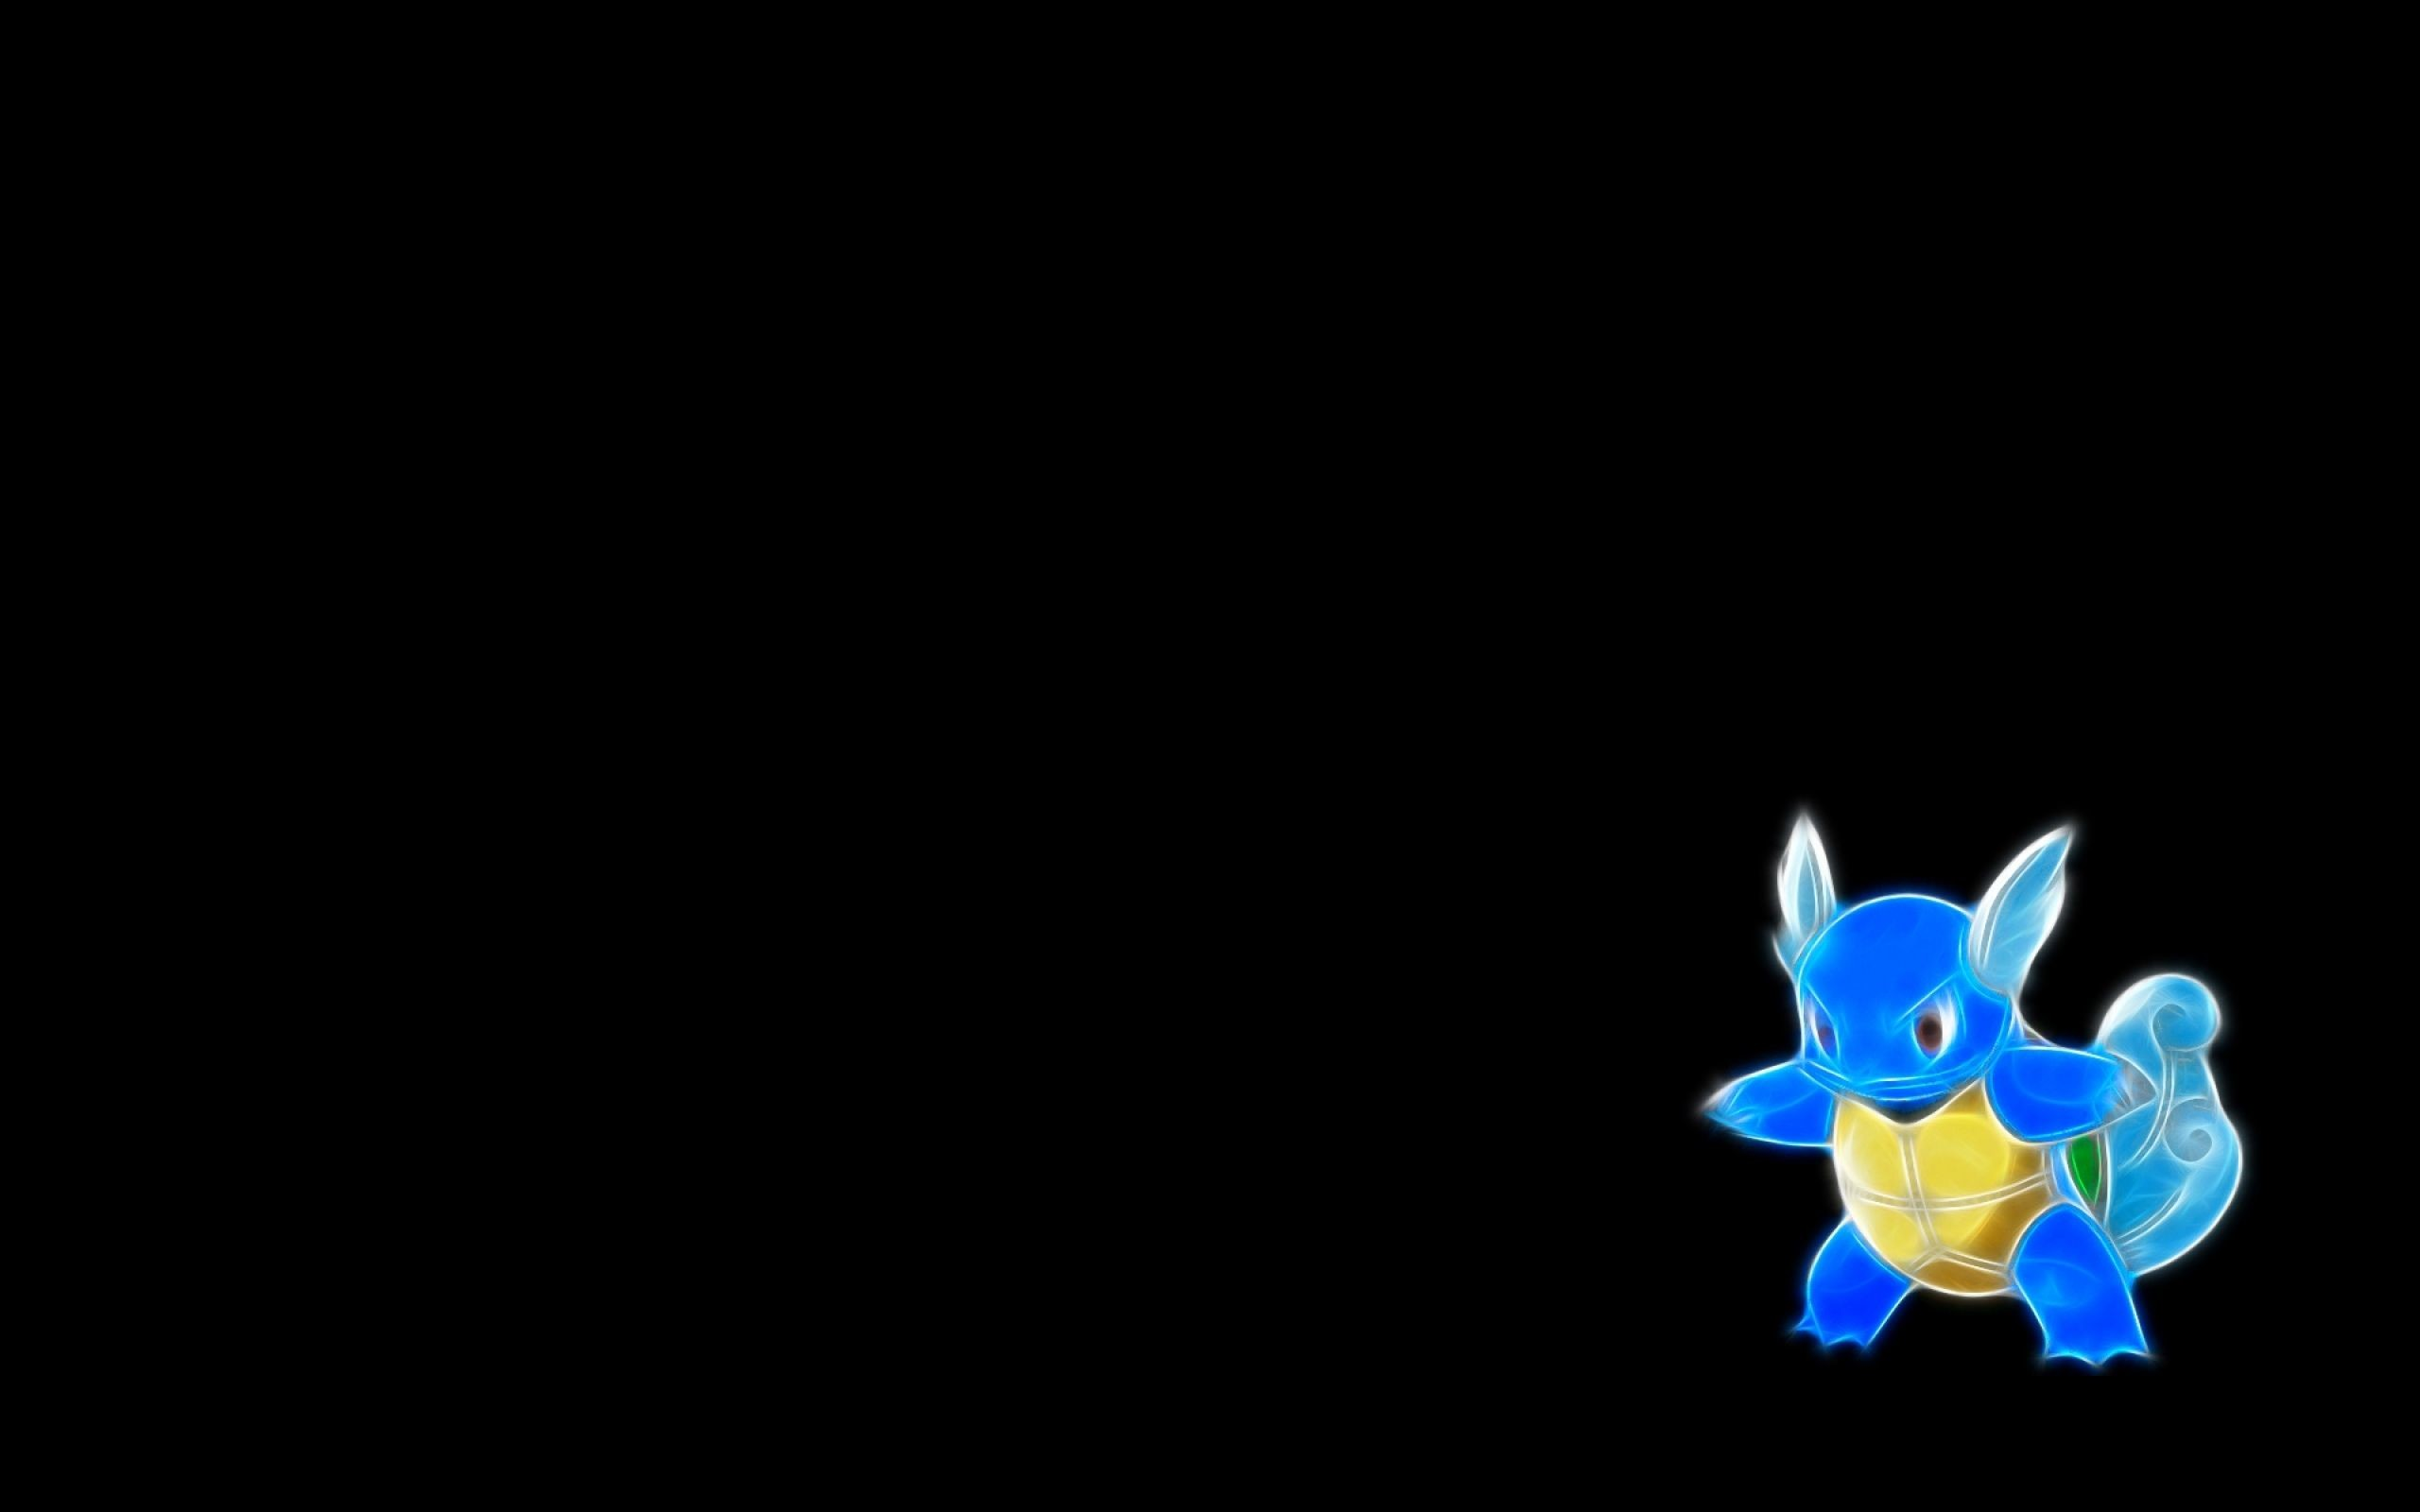 Res: 2560x1600, Squirtle wallpaper